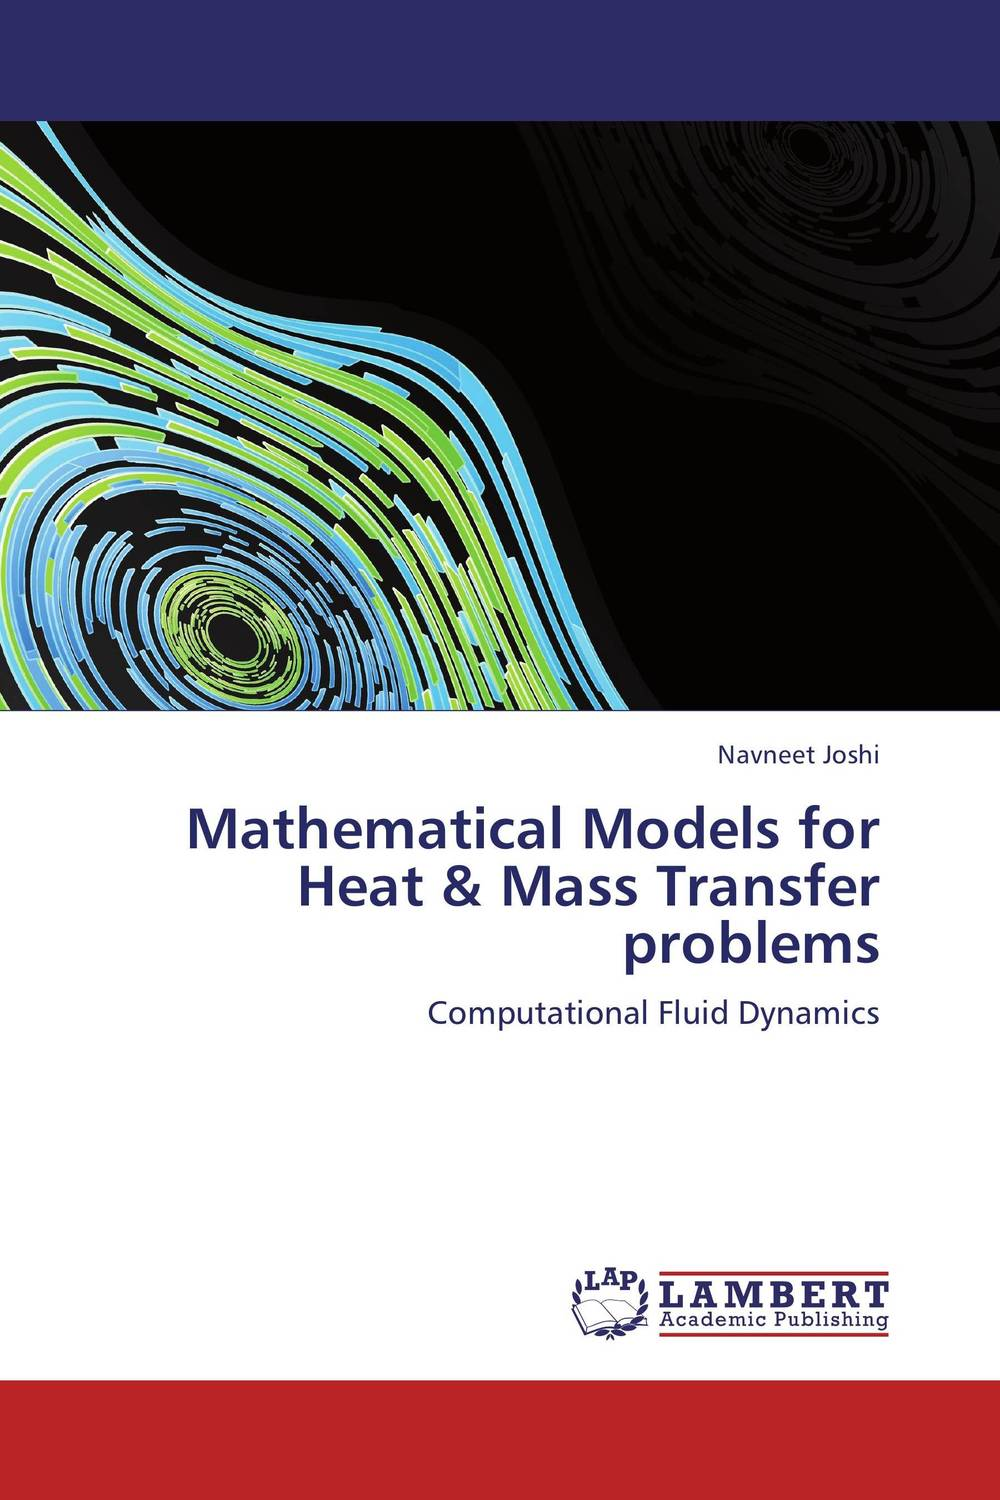 mathematical modeling of microwave heating of Read modeling of microwave heating of andesite and minerals, international journal of heat and mass transfer on deepdyve, the largest online rental service for scholarly research with thousands of academic publications available at your fingertips.